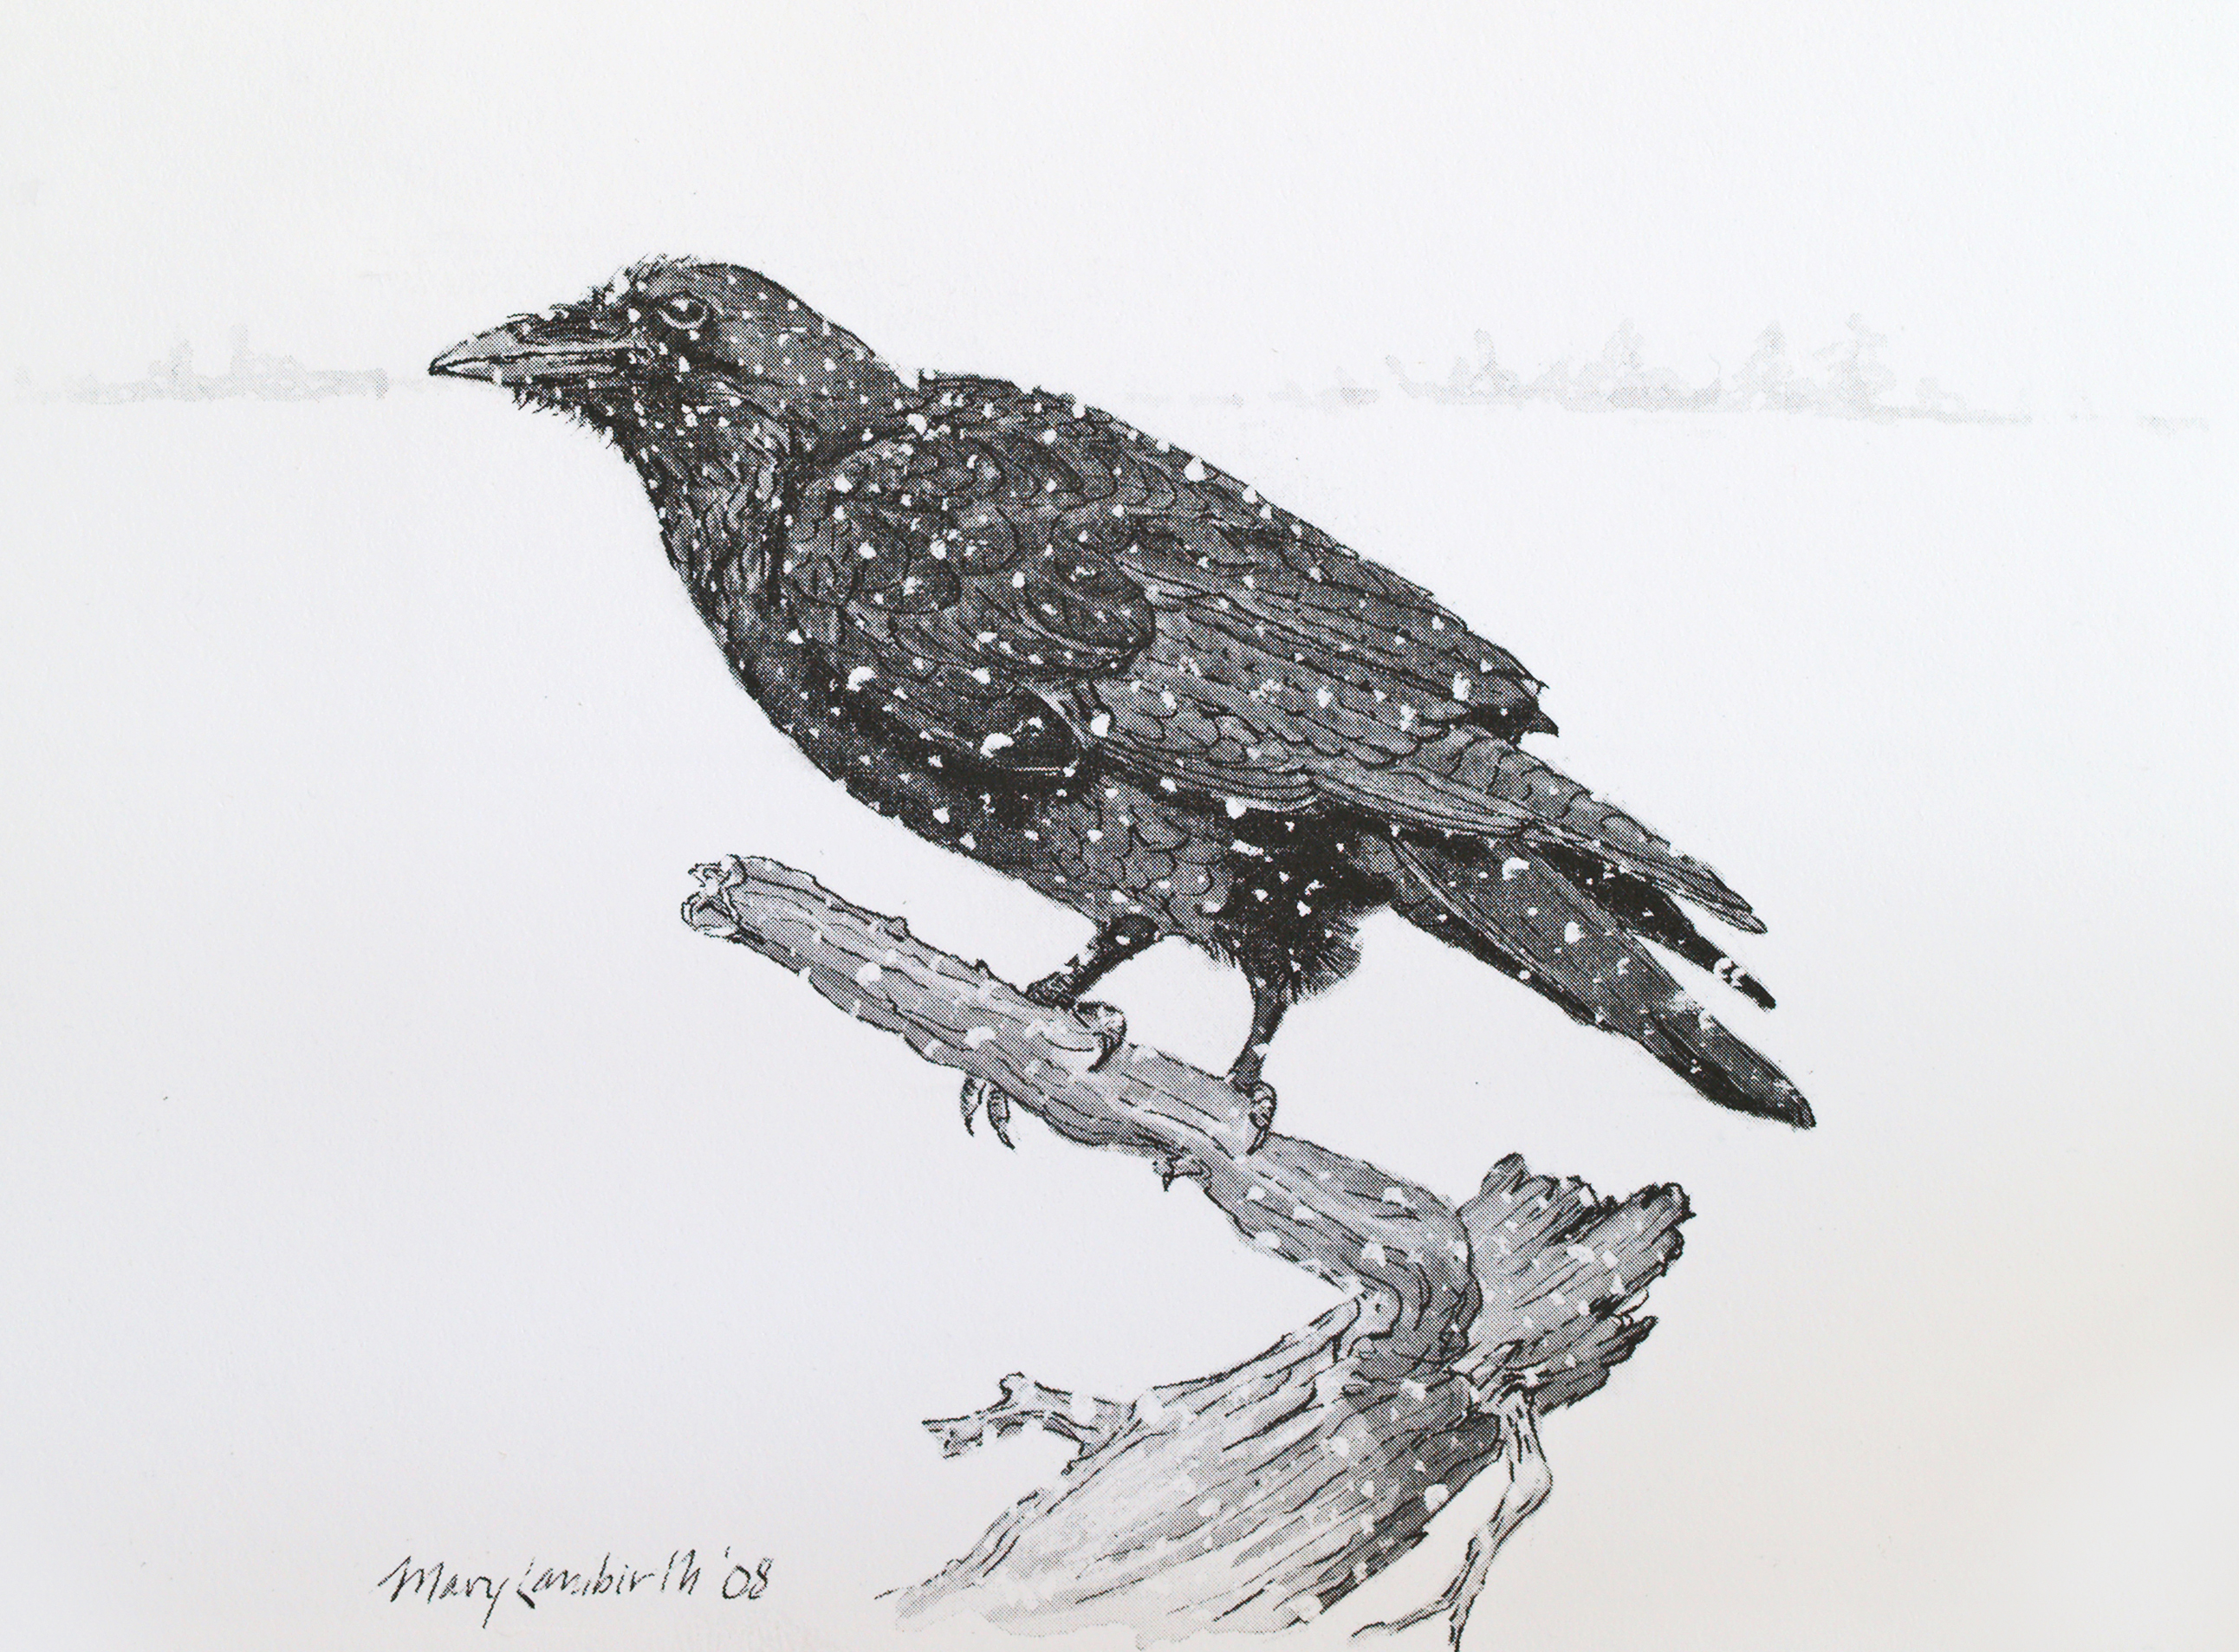 Drawn raven common raven A Lambirth Waters A (Mary